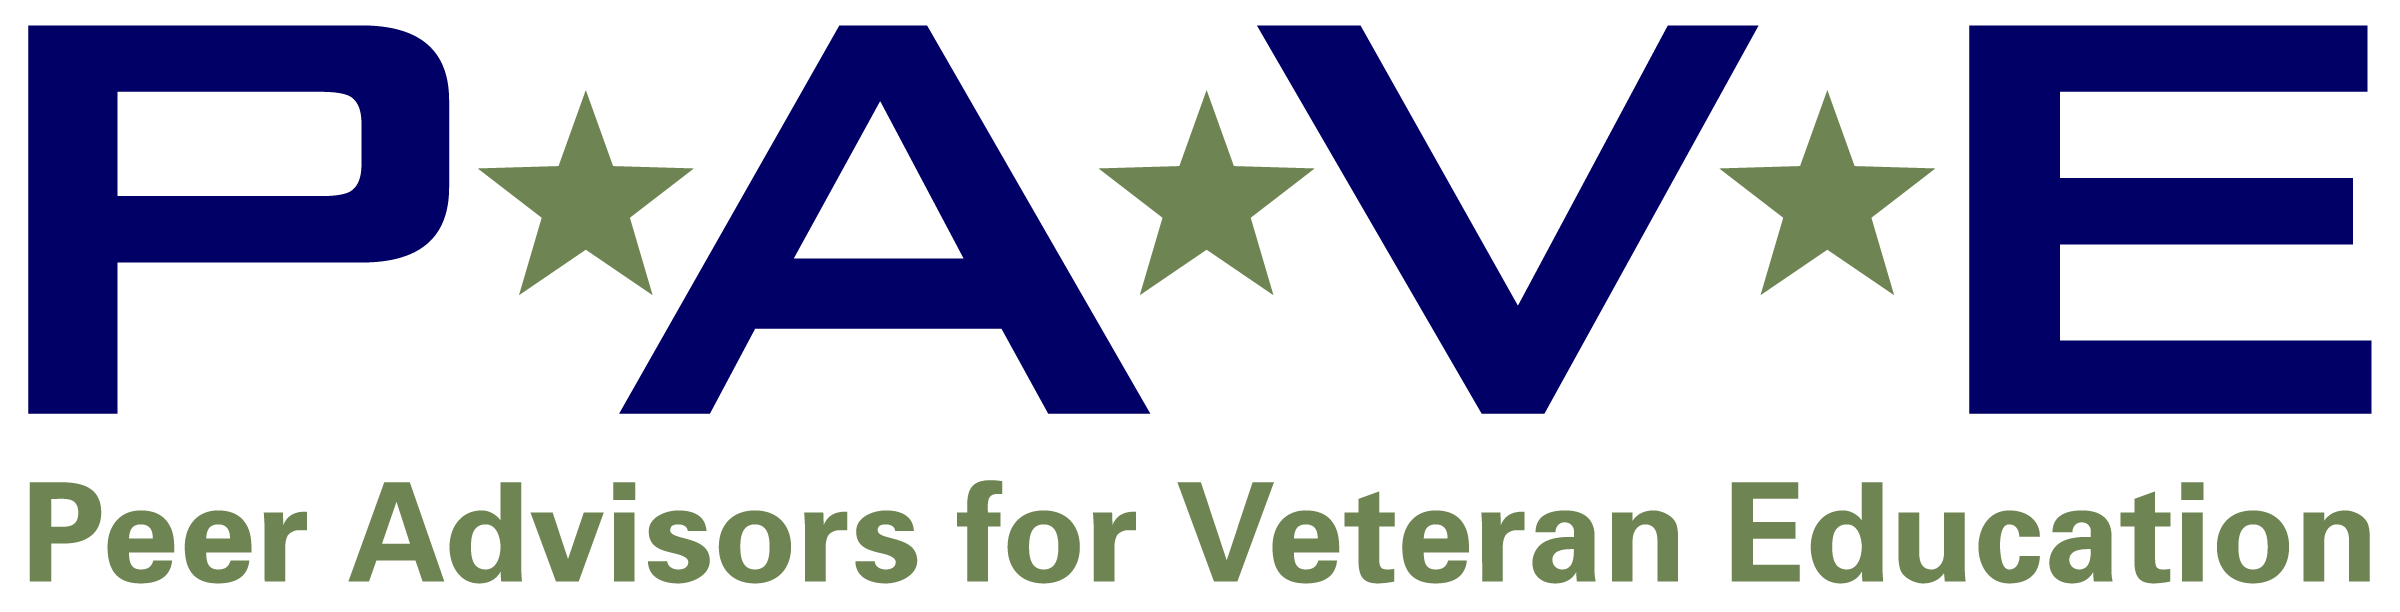 Peer Advisors for Veteran Education (PAVE)